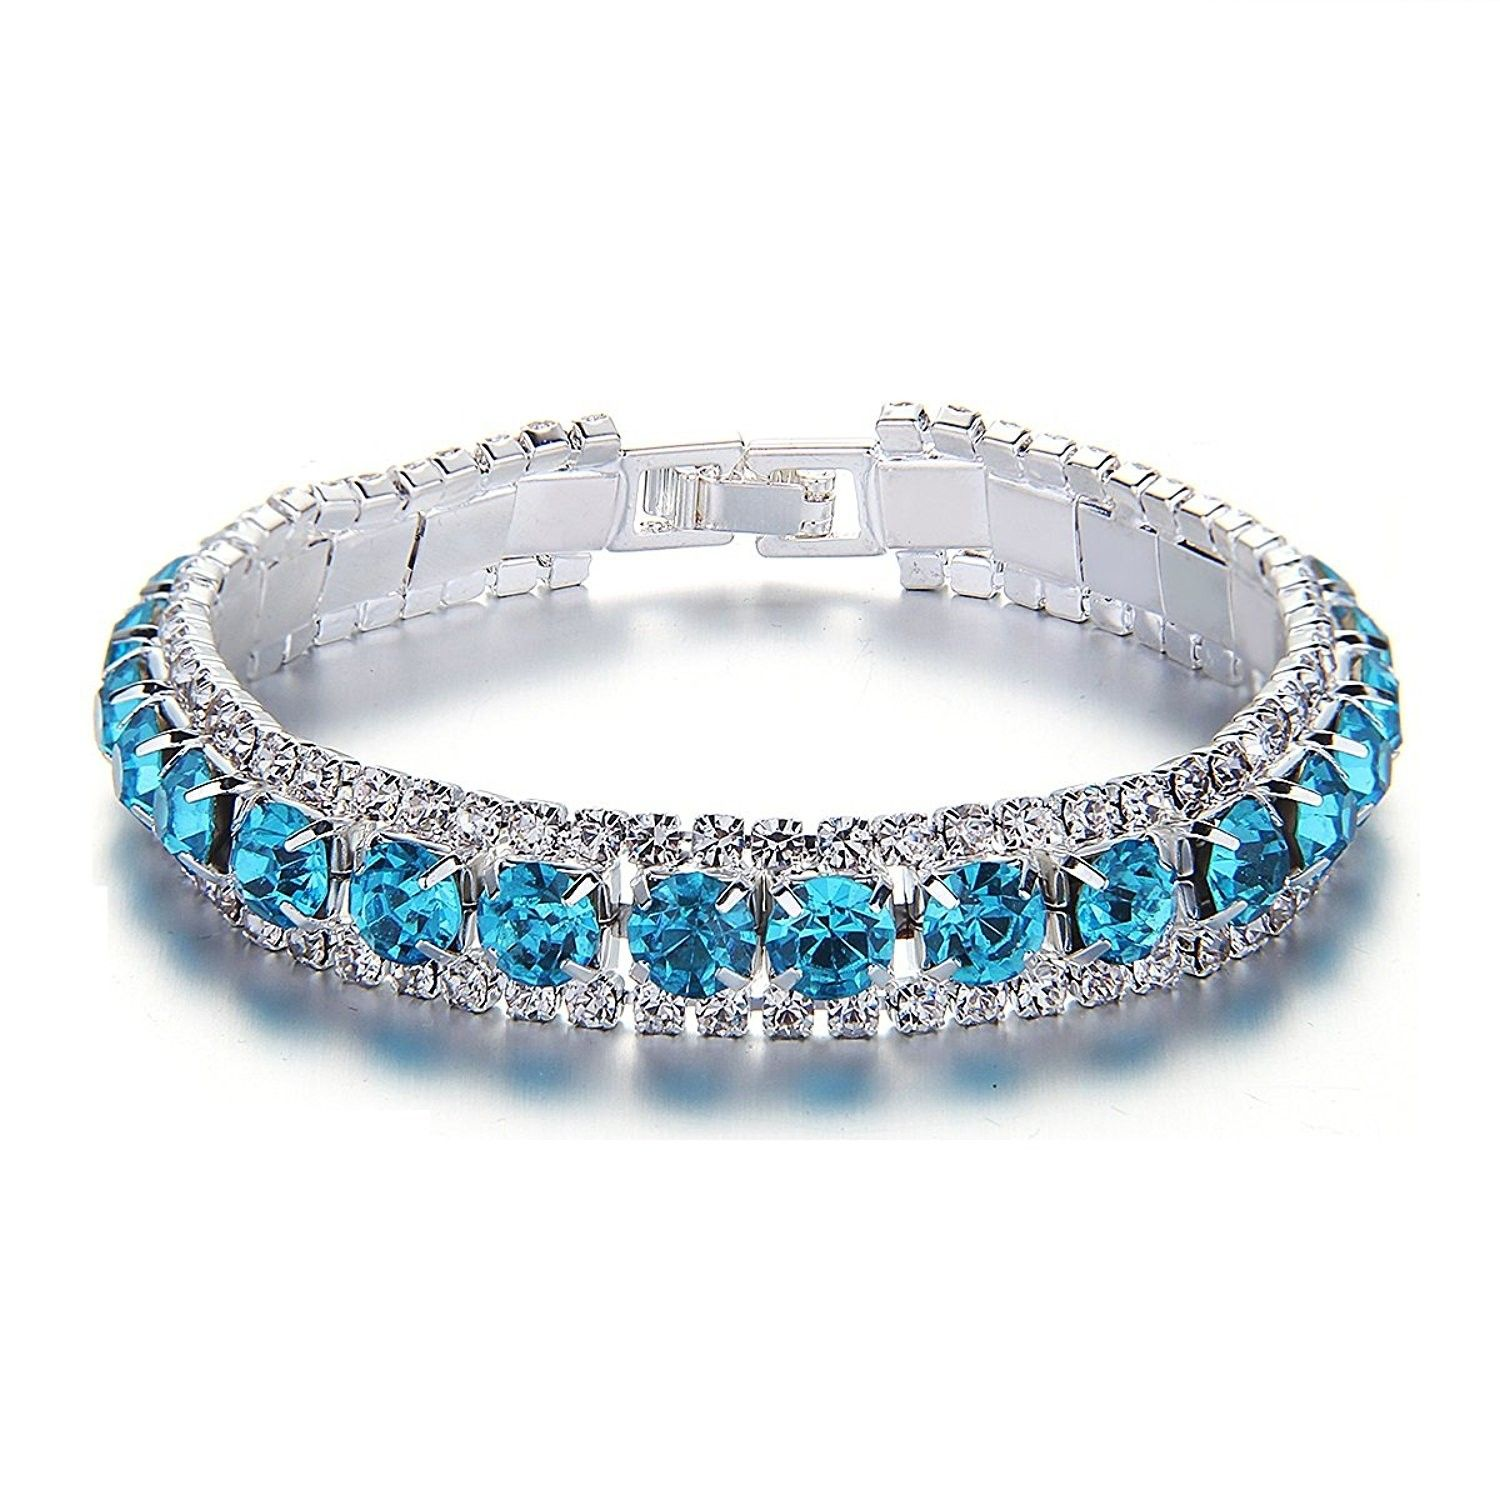 Blue rhinestone bangle bracelets silver crystal link wedding